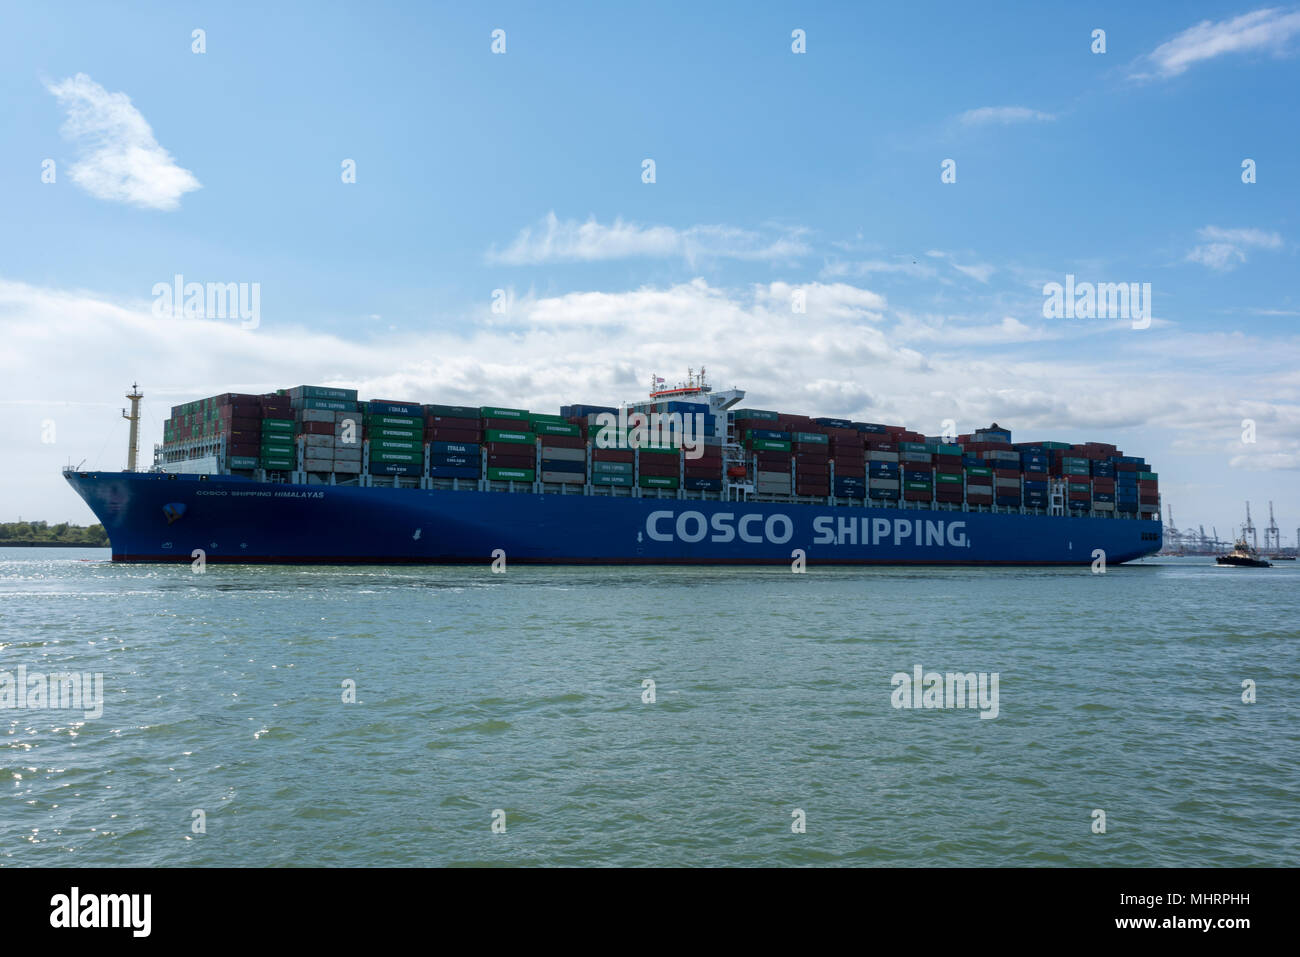 Southampton, UK. 3rd May, 2018. The Cosco Shipping Himalayas huge container ship sailing from the port of Southampton fully loaded with containers full of british goods being exported to worldwide businesses. International exports befor Brexit to Europe and the rest of the world from british businesses and manufacturing organisations. Credit: Steve Hawkins Photography/Alamy Live News - Stock Image